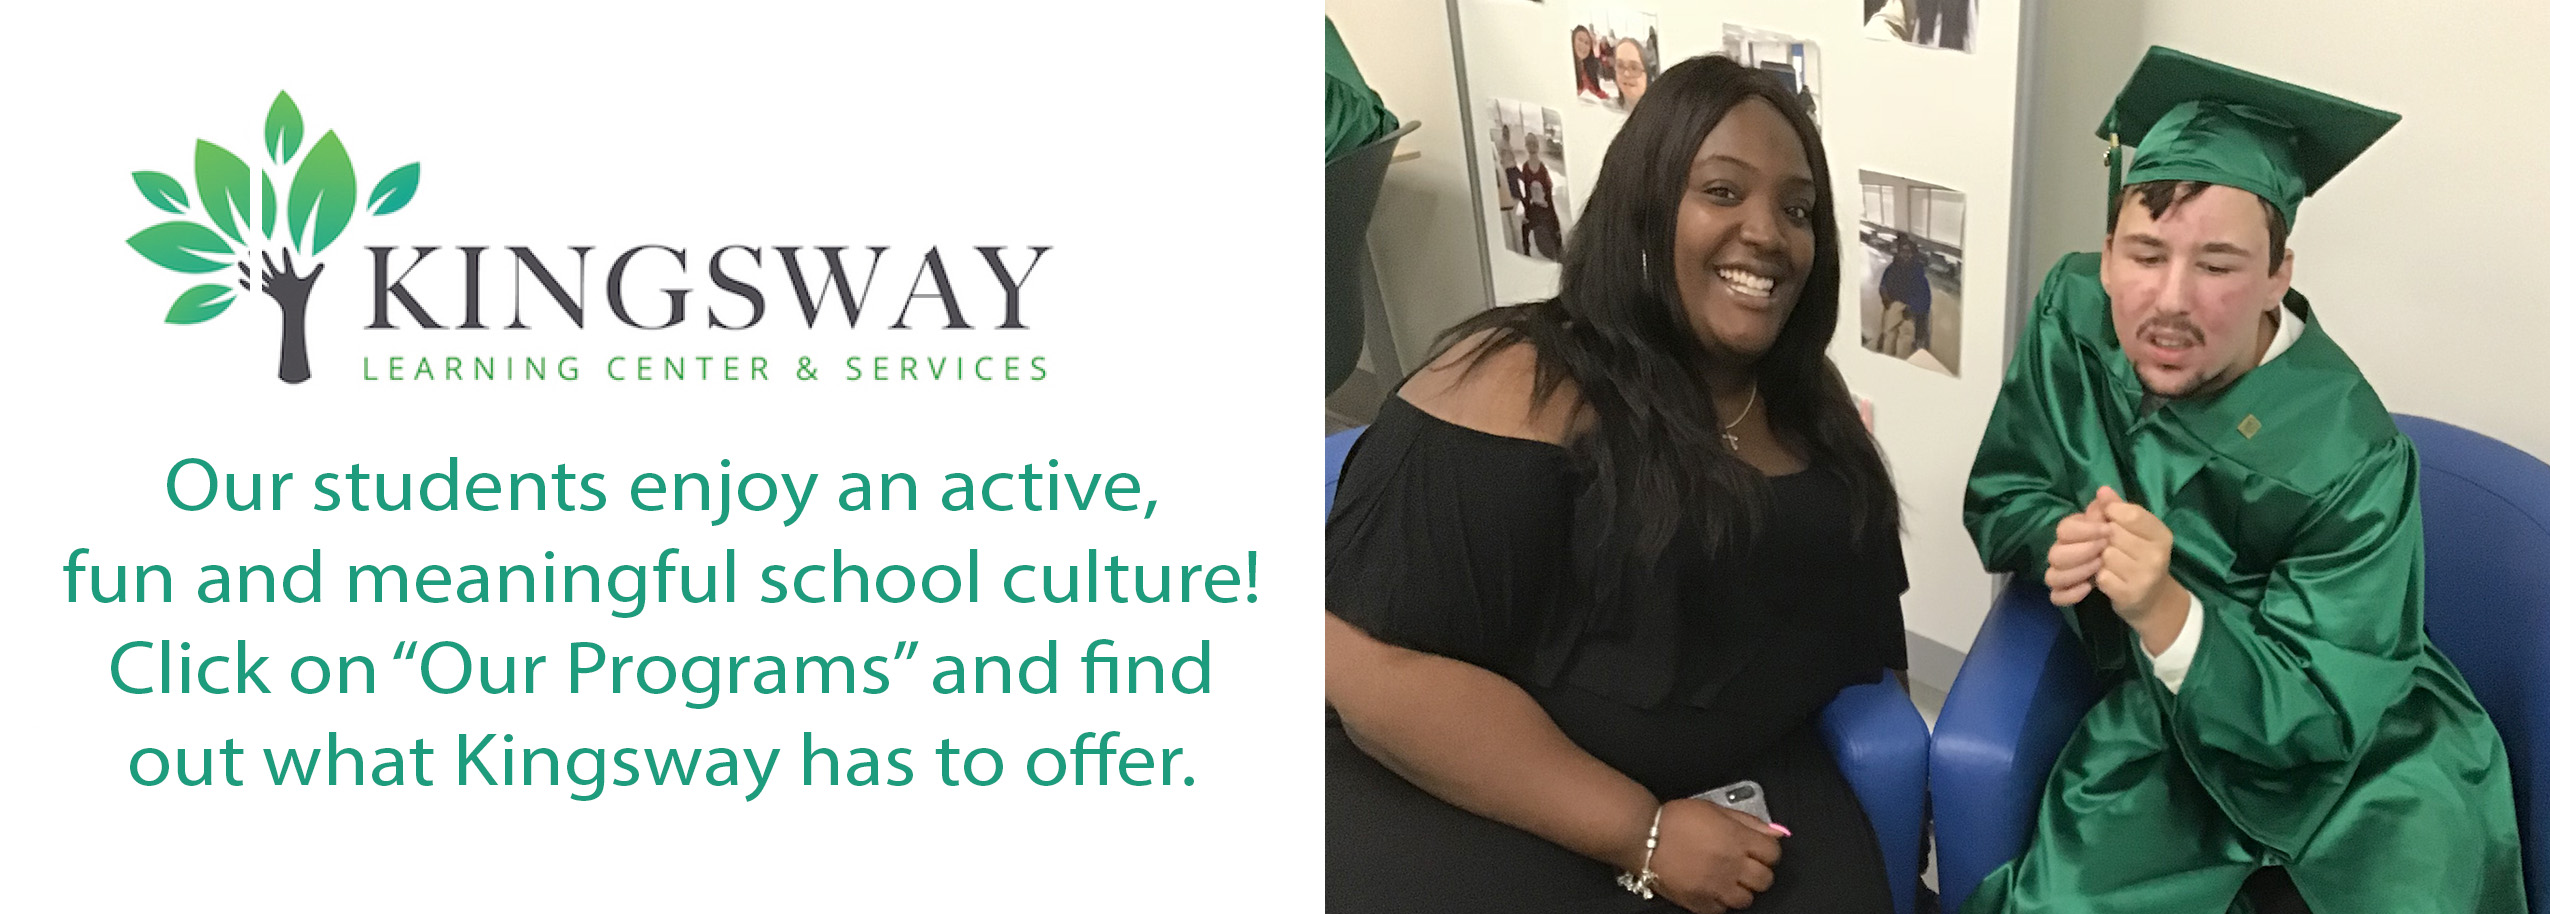 kingsway_school_culture_slider